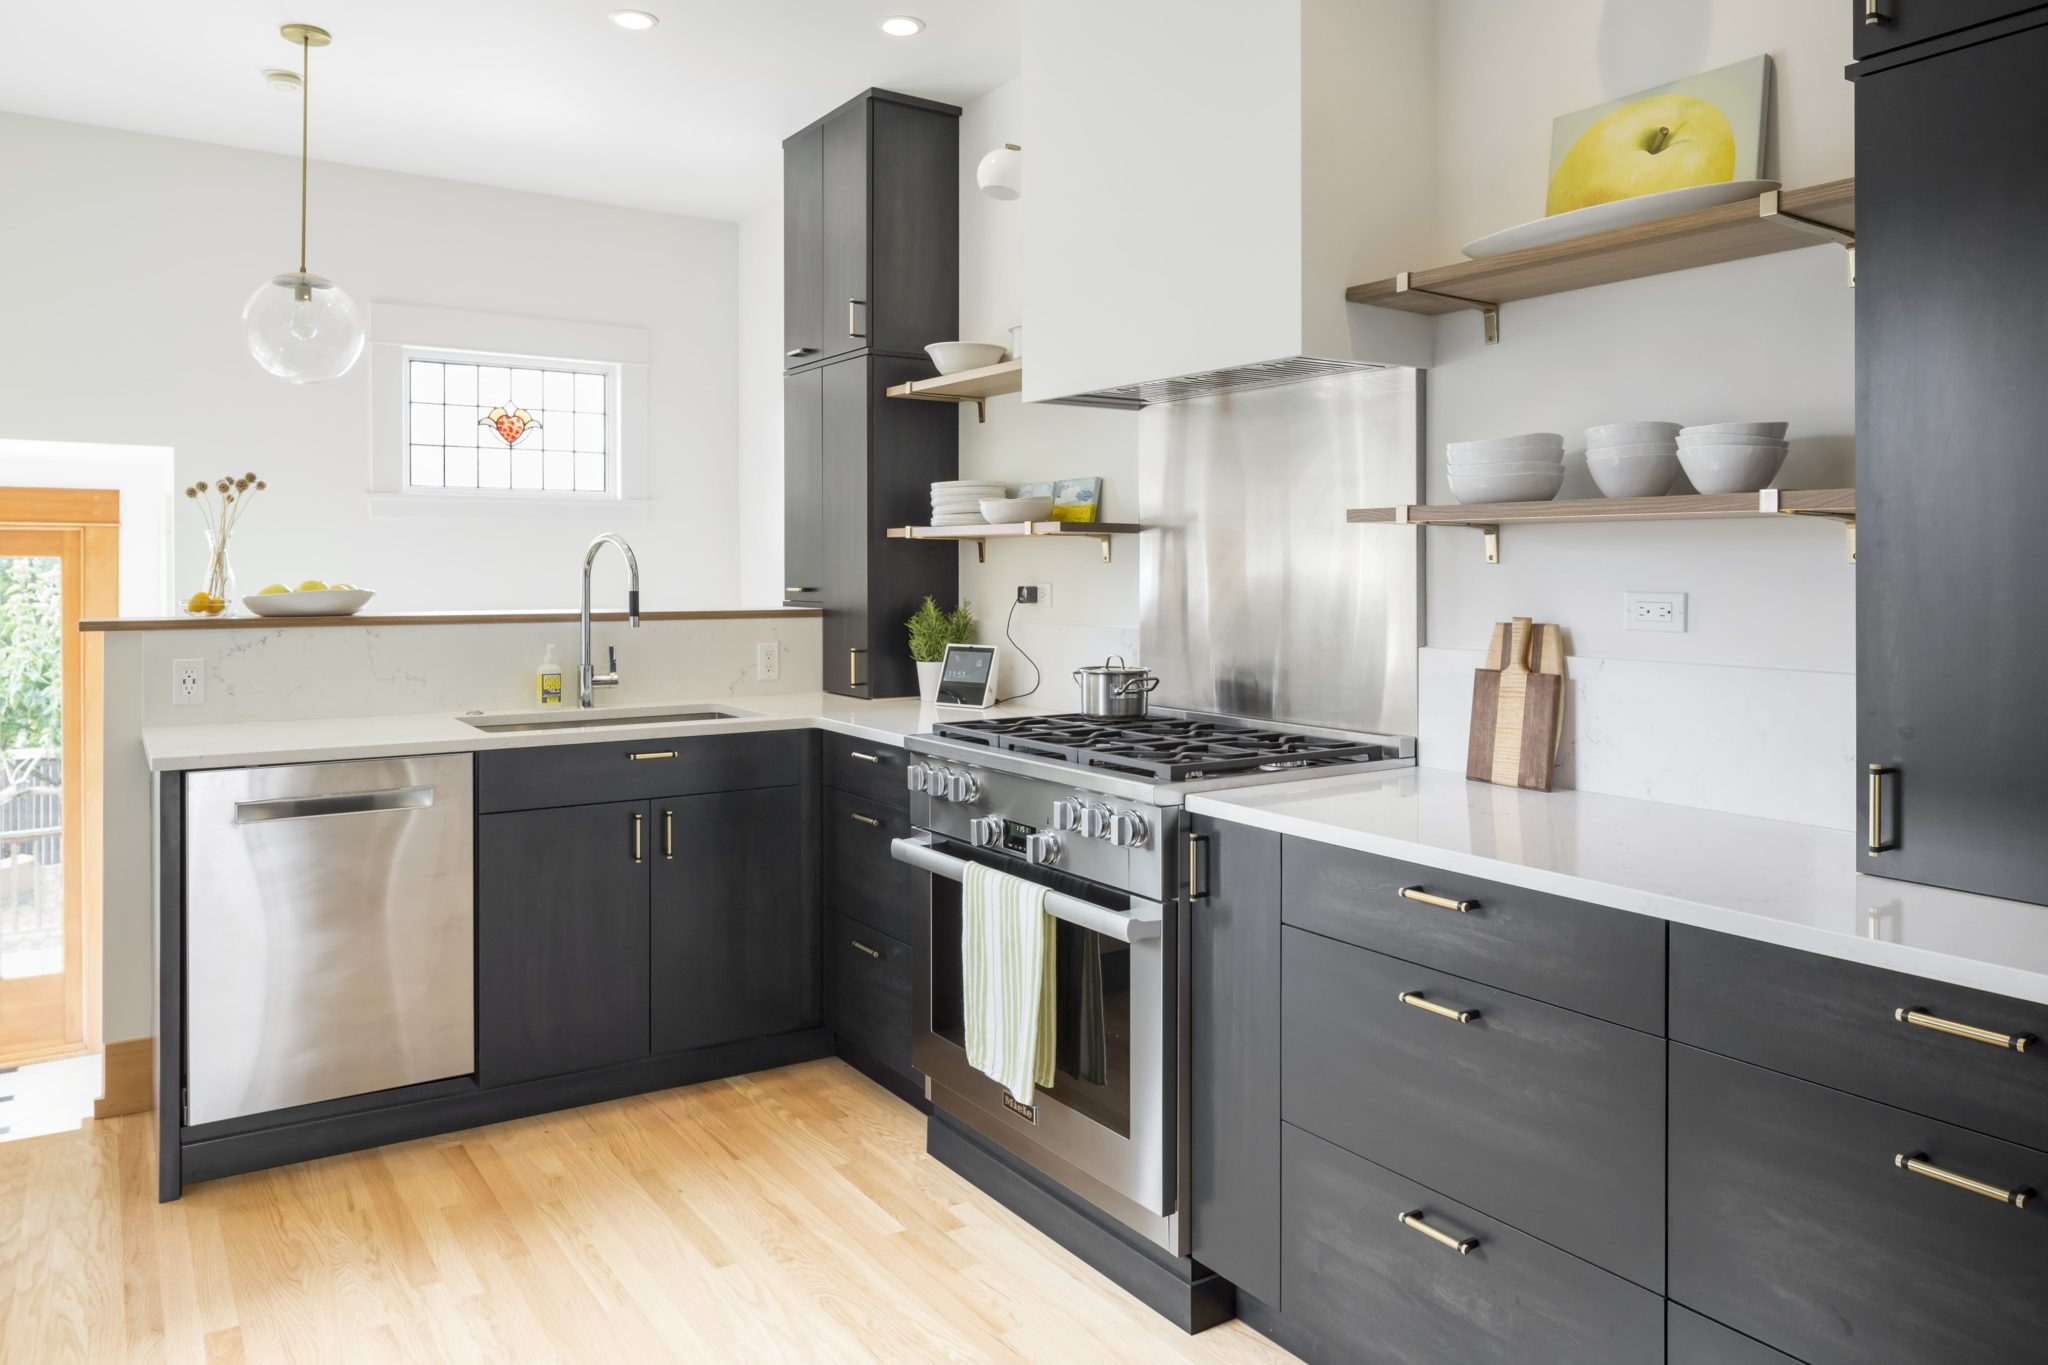 Best Small Kitchen Renovation Ideas